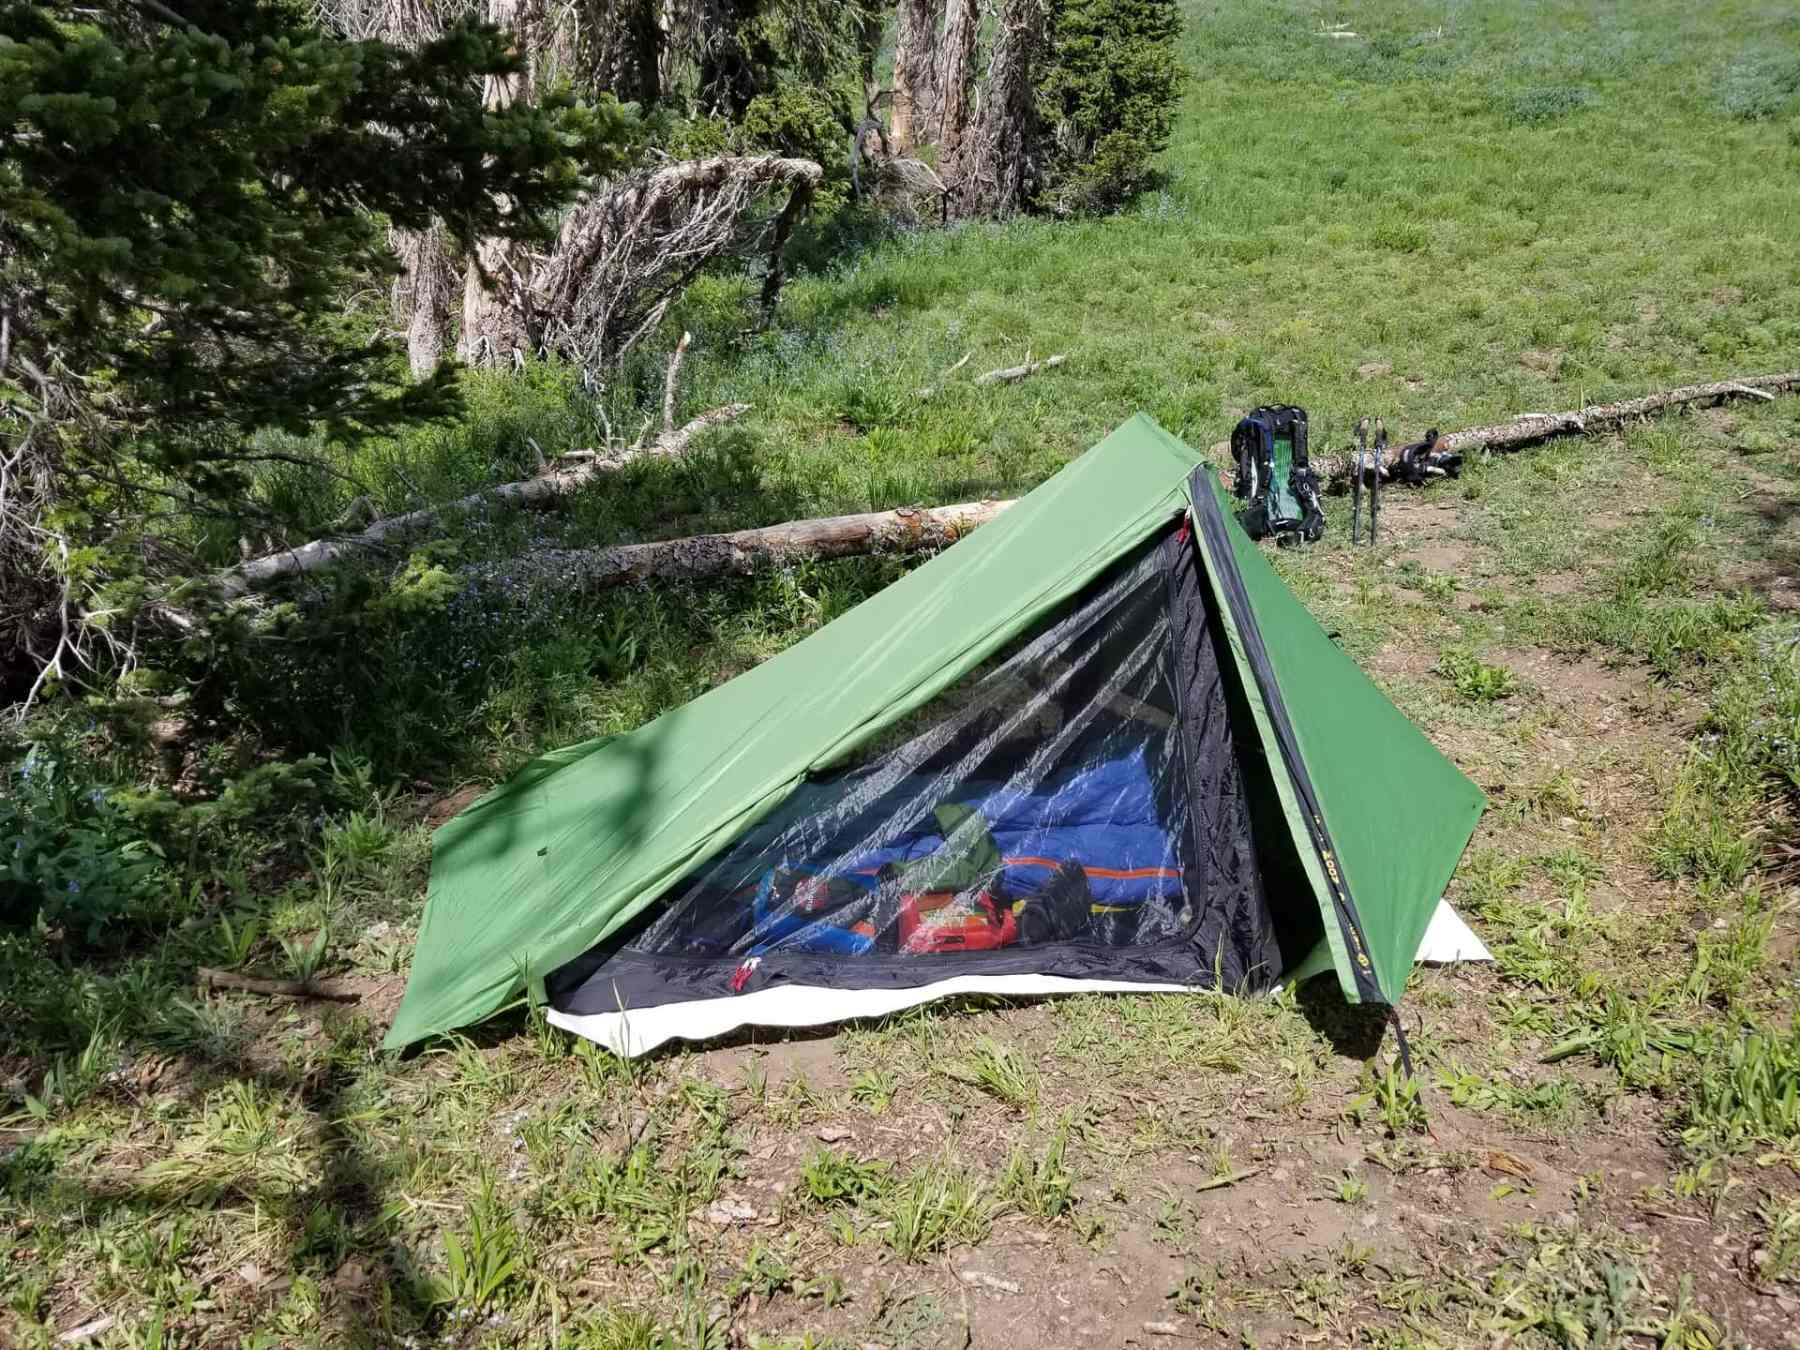 Camping setup for backpacking/overnight hiking